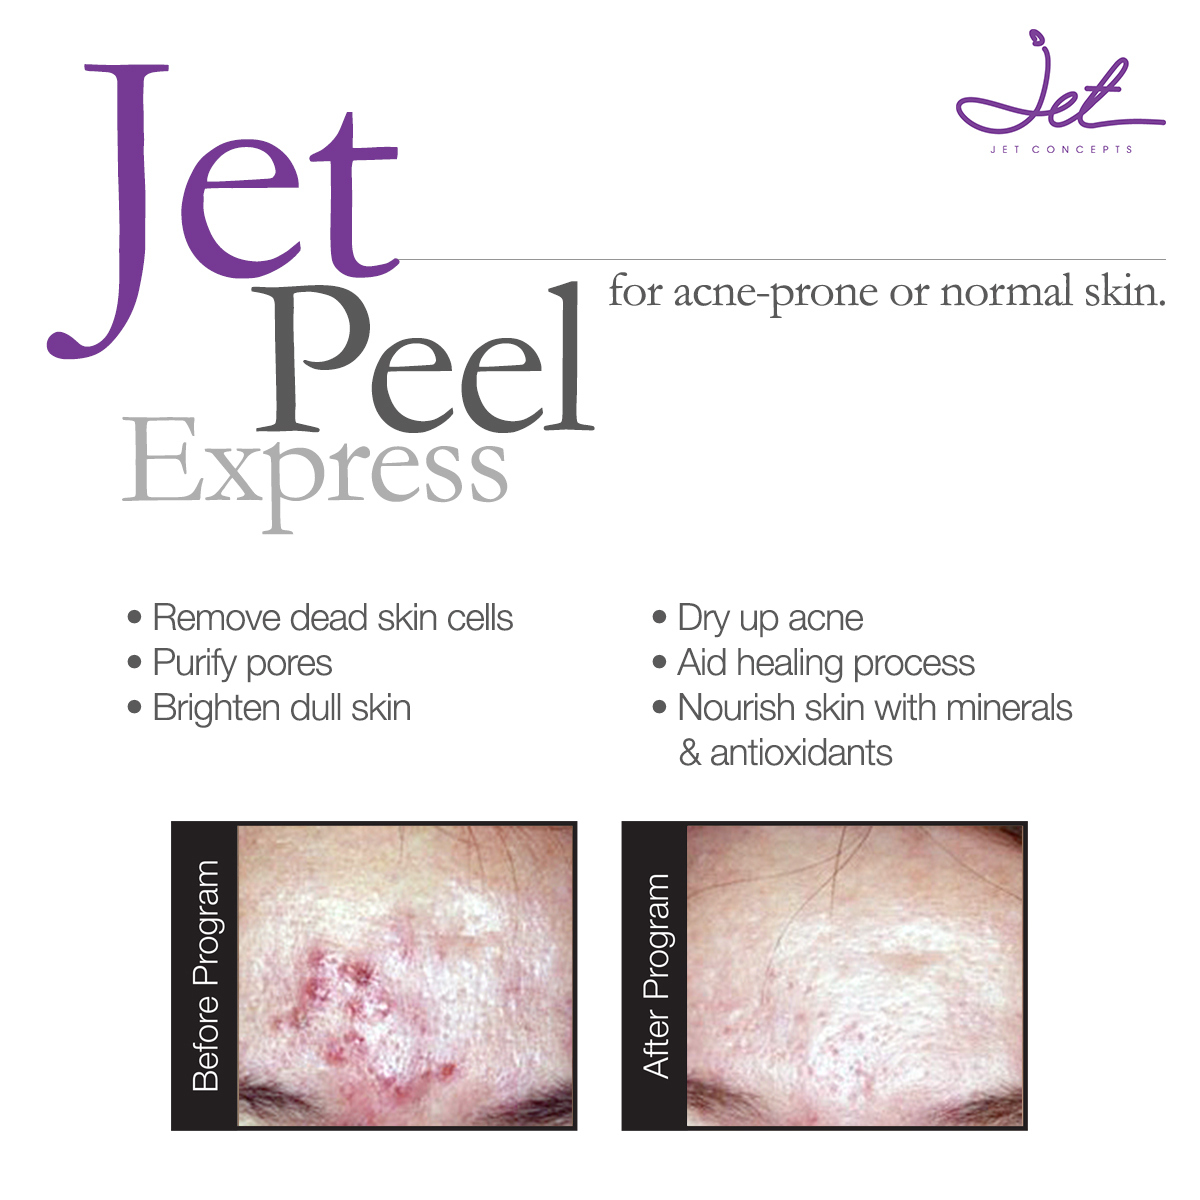 Jet Concepts Treatment - Jet Peel Express